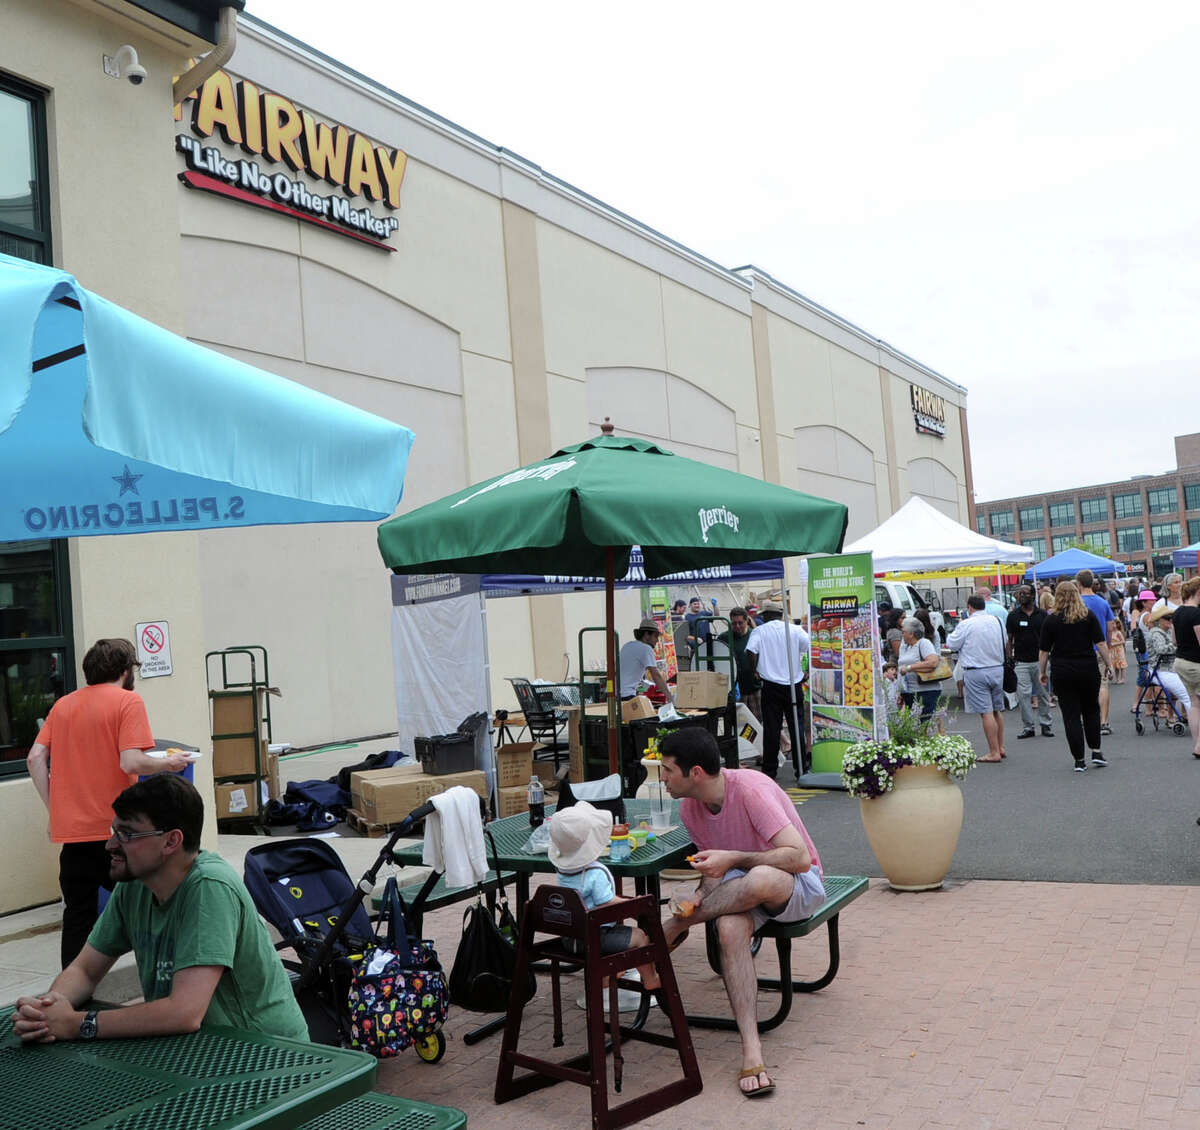 Fairway Market's store in Stamford, Conn., measures 85,000 square feet of space. On October 29, 2015, the company's CEO described Tri-state area expansion plans pegged to stores anywhere from half to a quarter the size of the Stamford store.